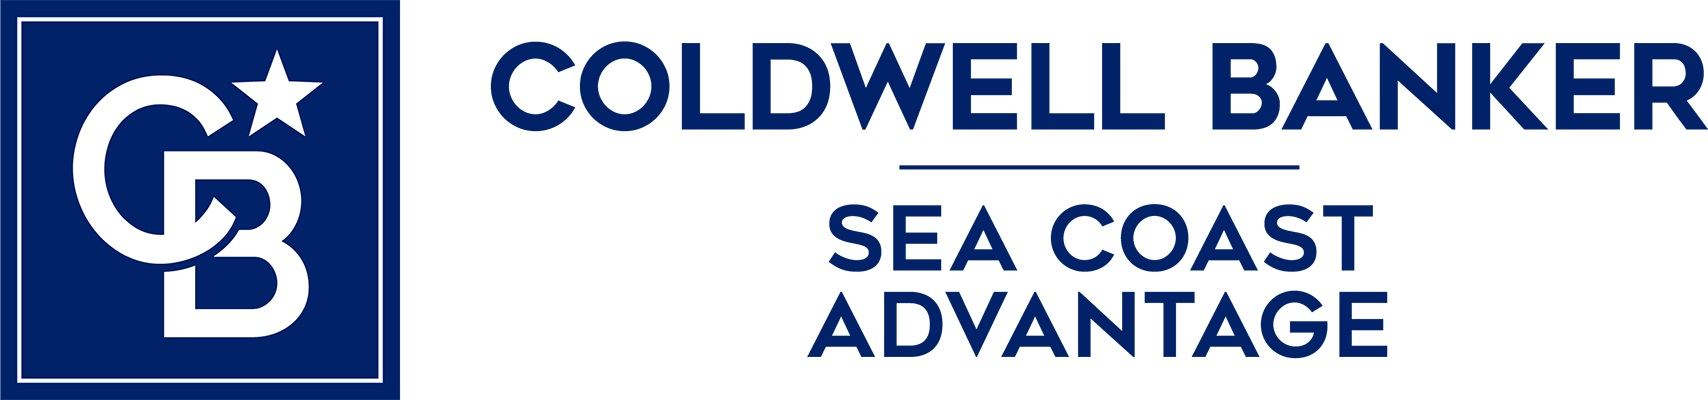 Christina Dawson - Coldwell Banker Sea Coast Advantage Realty Logo